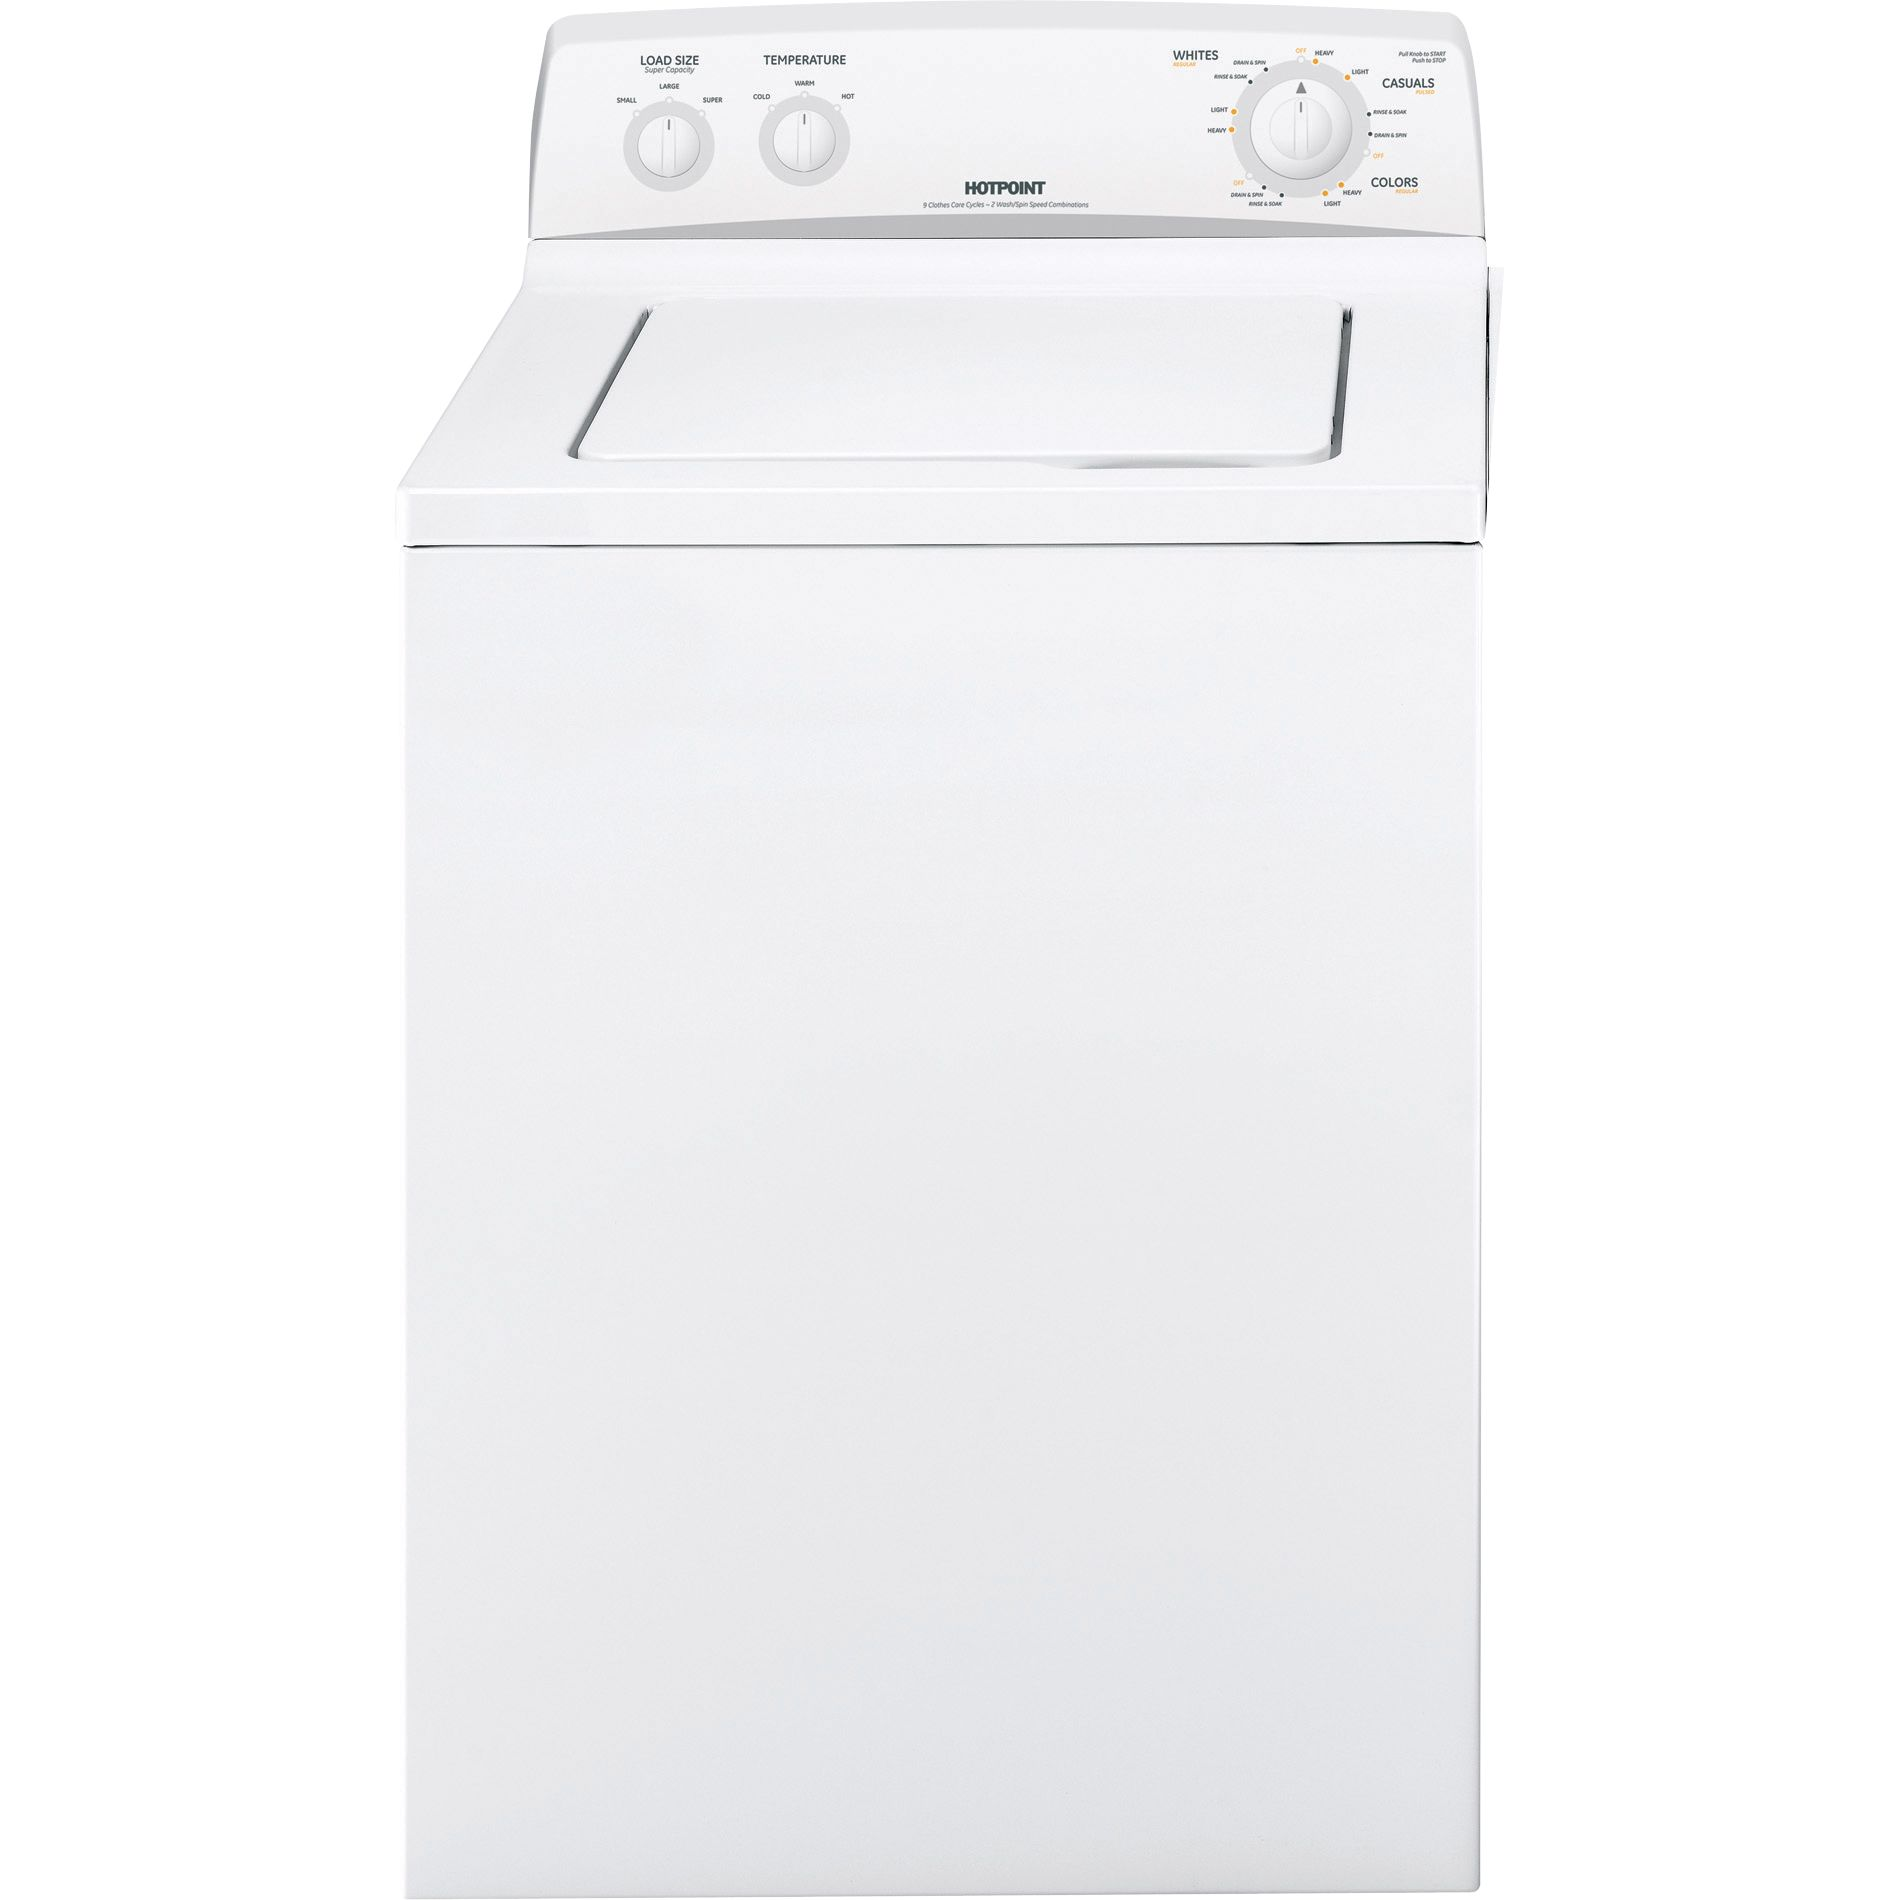 Hotpoint Top Loading Washing Machine Hotpoint 33 Cu Ft Top Load Washer Appliances Washers Top